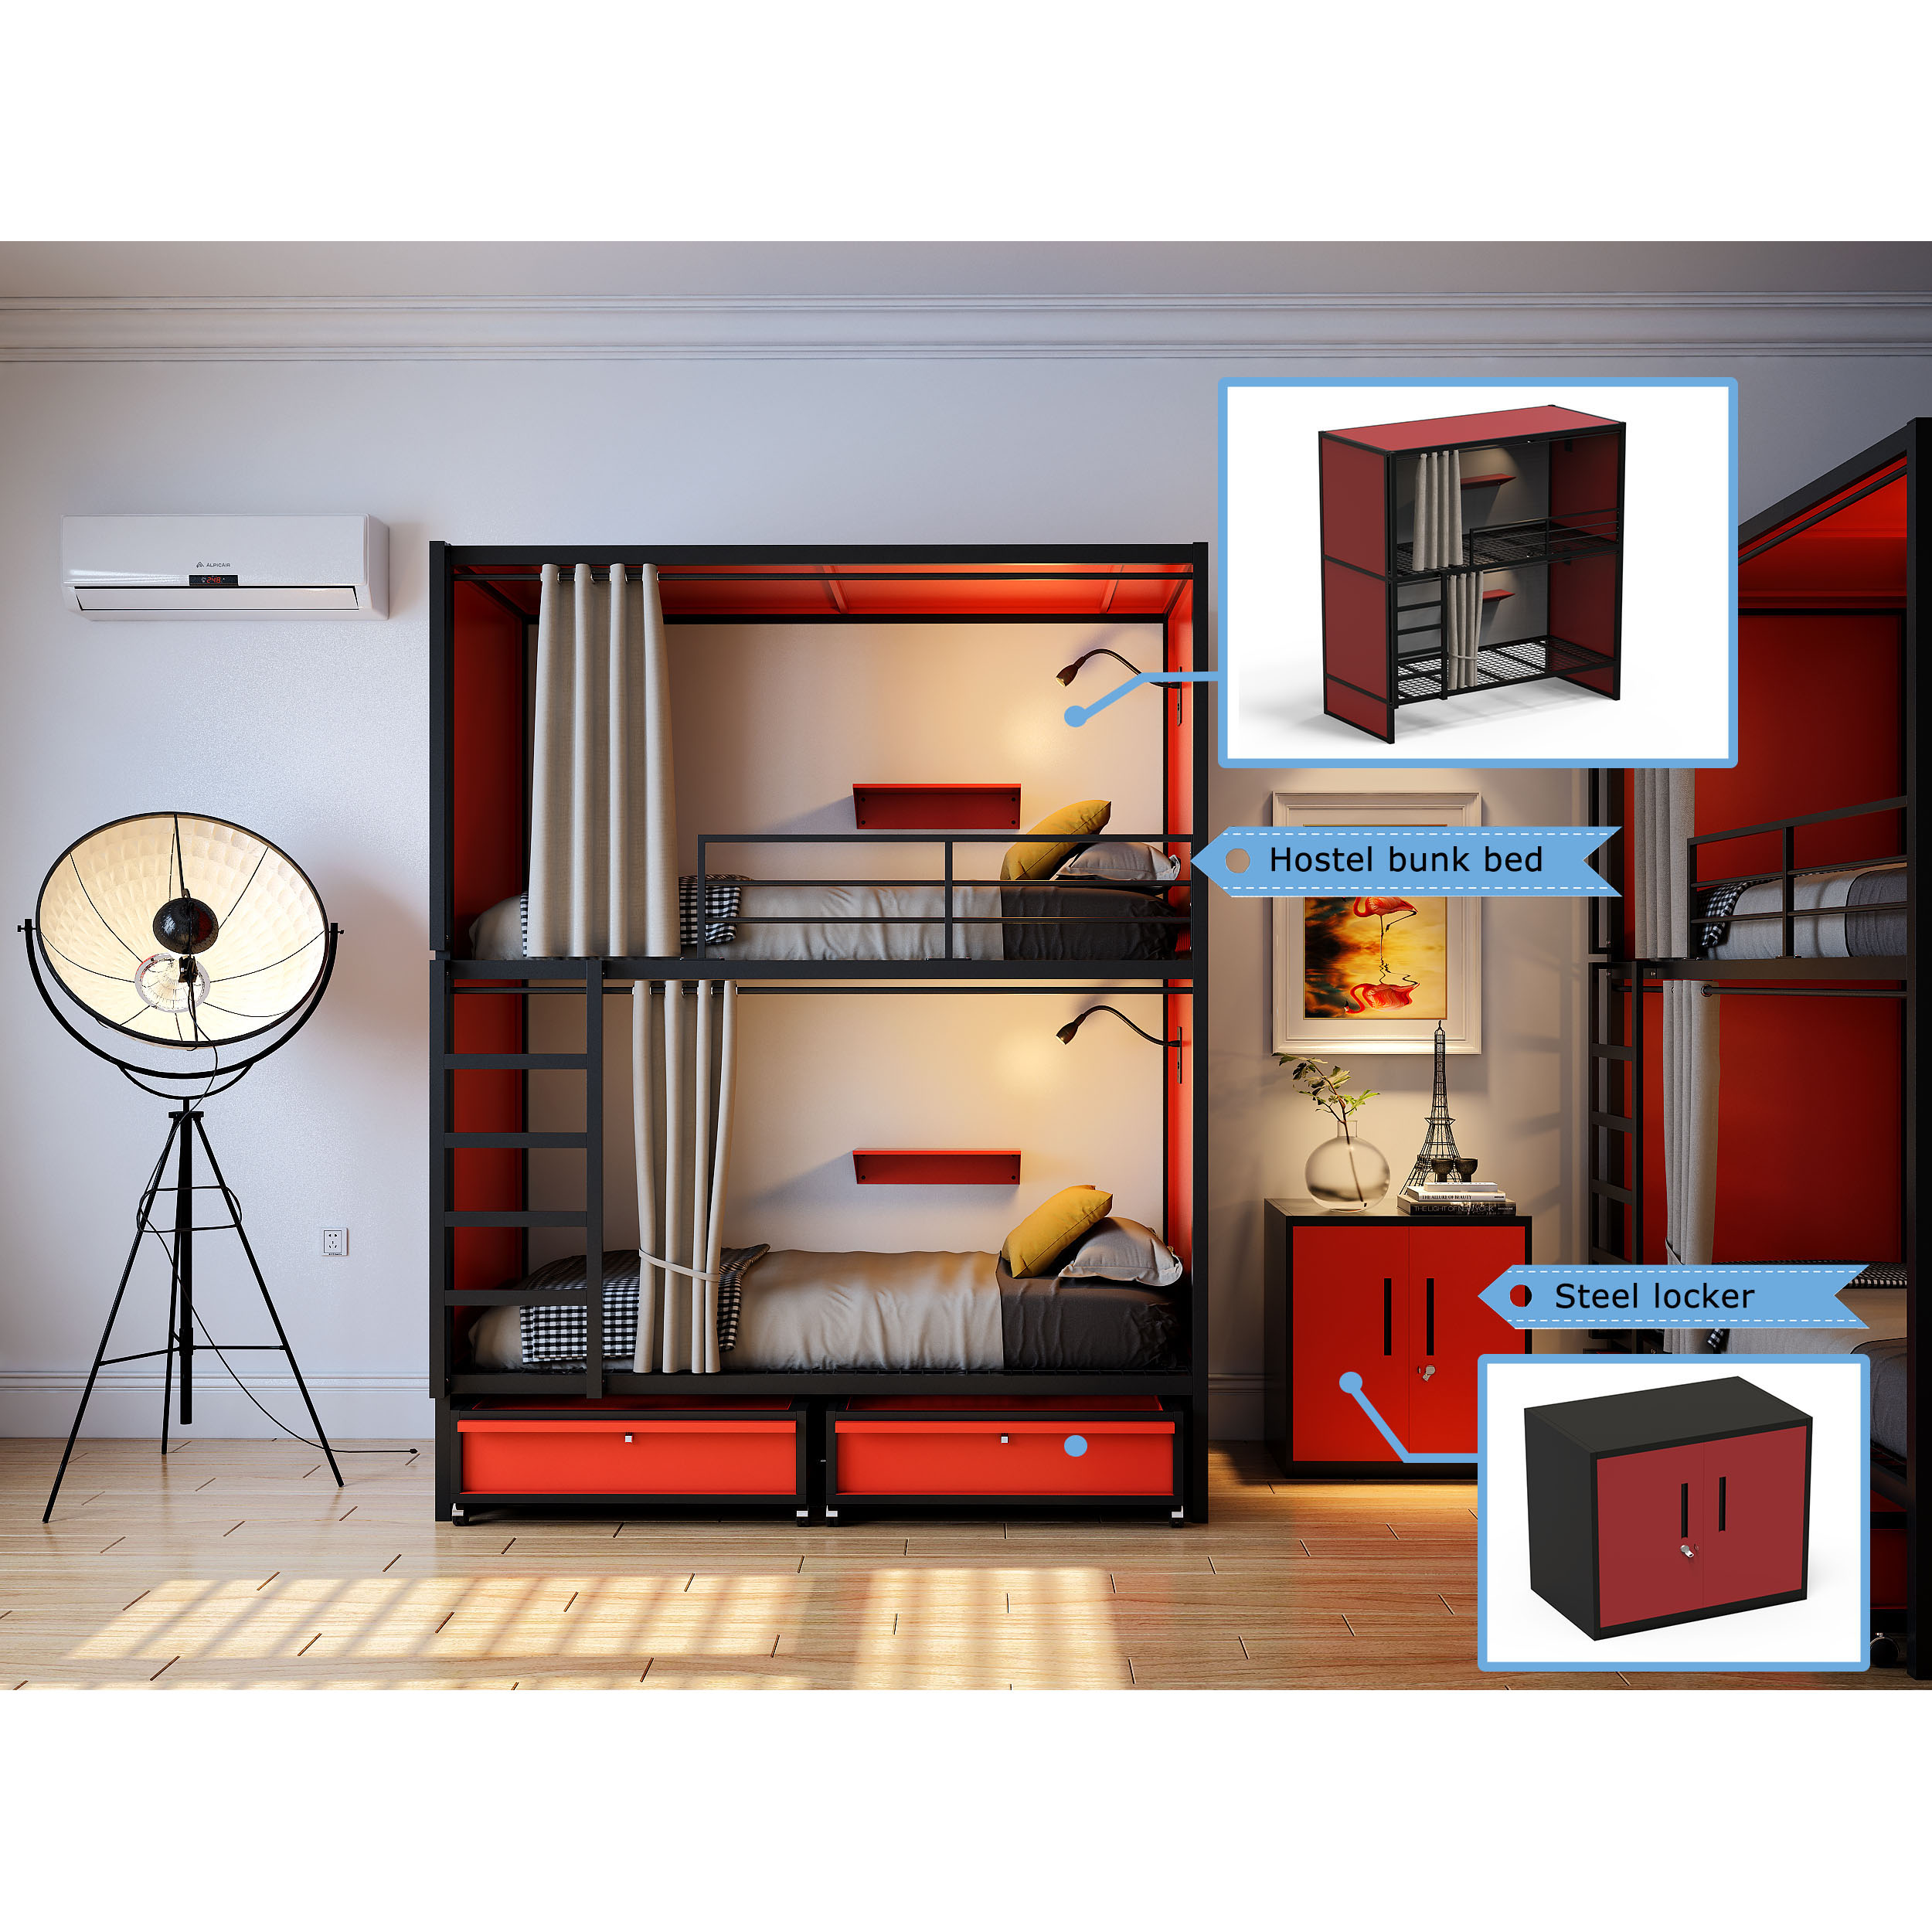 Modern Design Iron Queen Size Hostel Double Loft Bunk Bed Frame Room Furniture Bedroom Set For University Sale Buy Stainless European Bed With Clothes Rack For Hostel Low Price Heavy Duty Bed